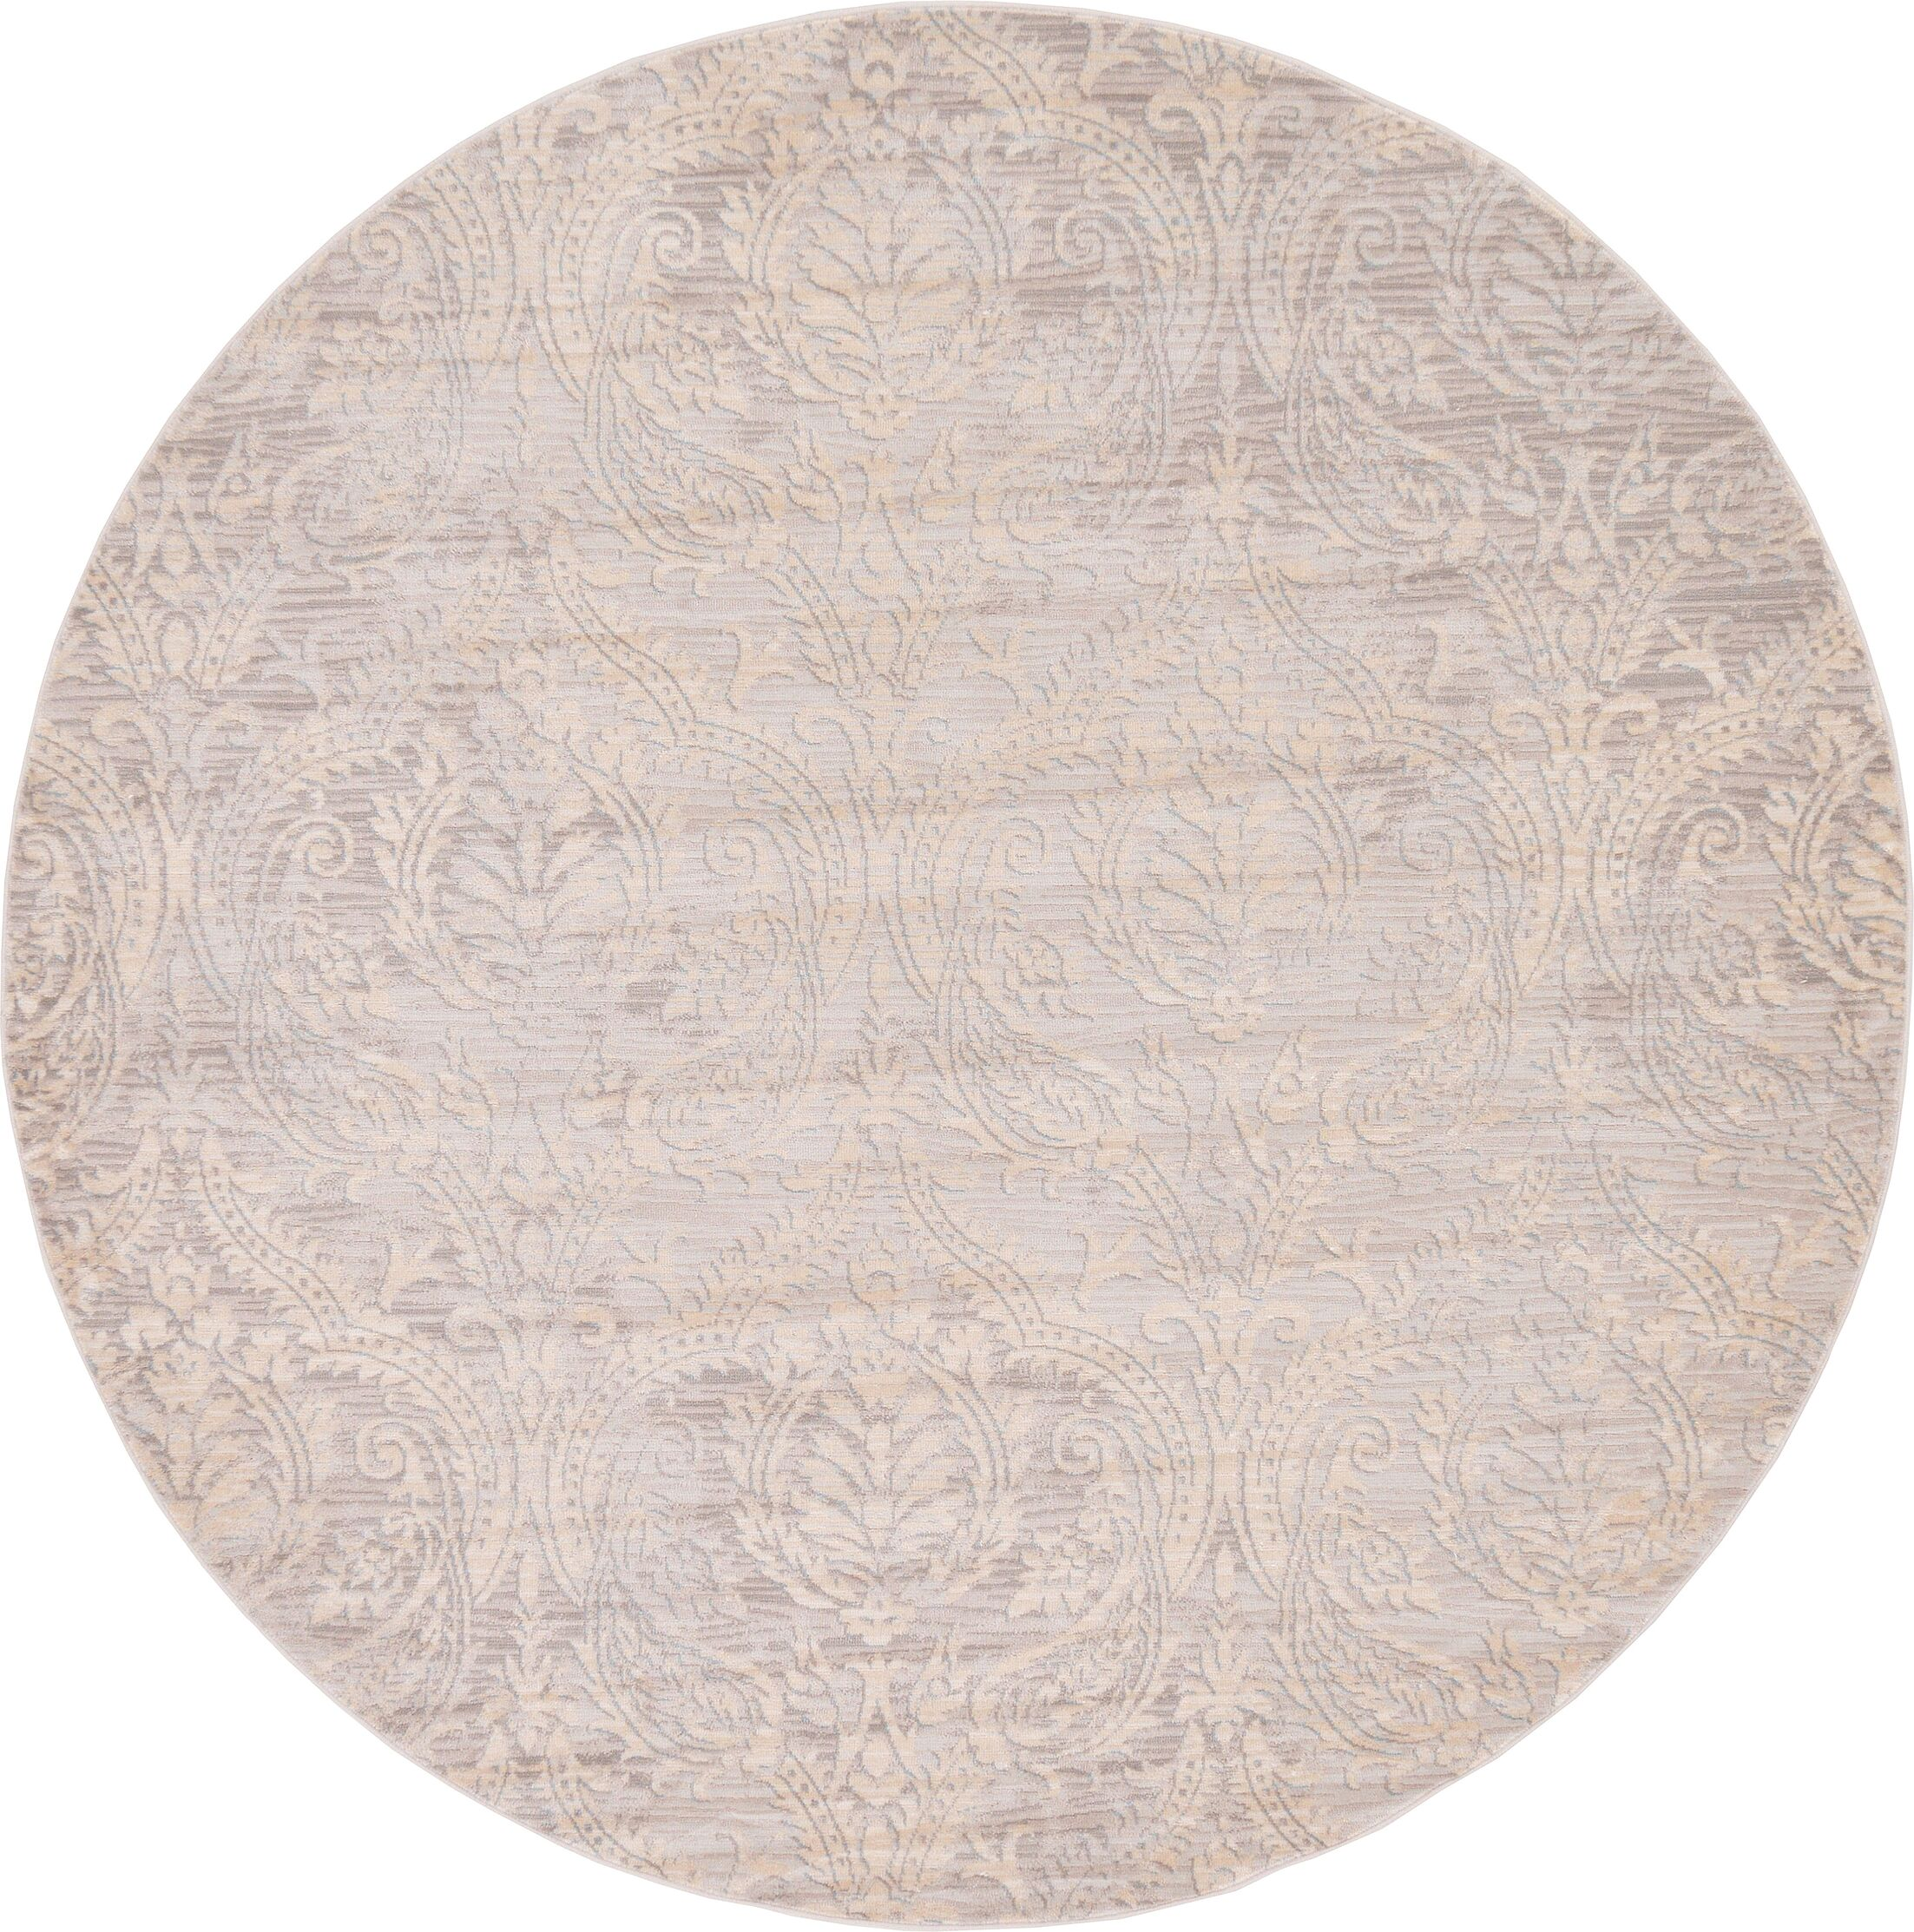 Pellham Gray Area Rug Rug Size: Round 6'